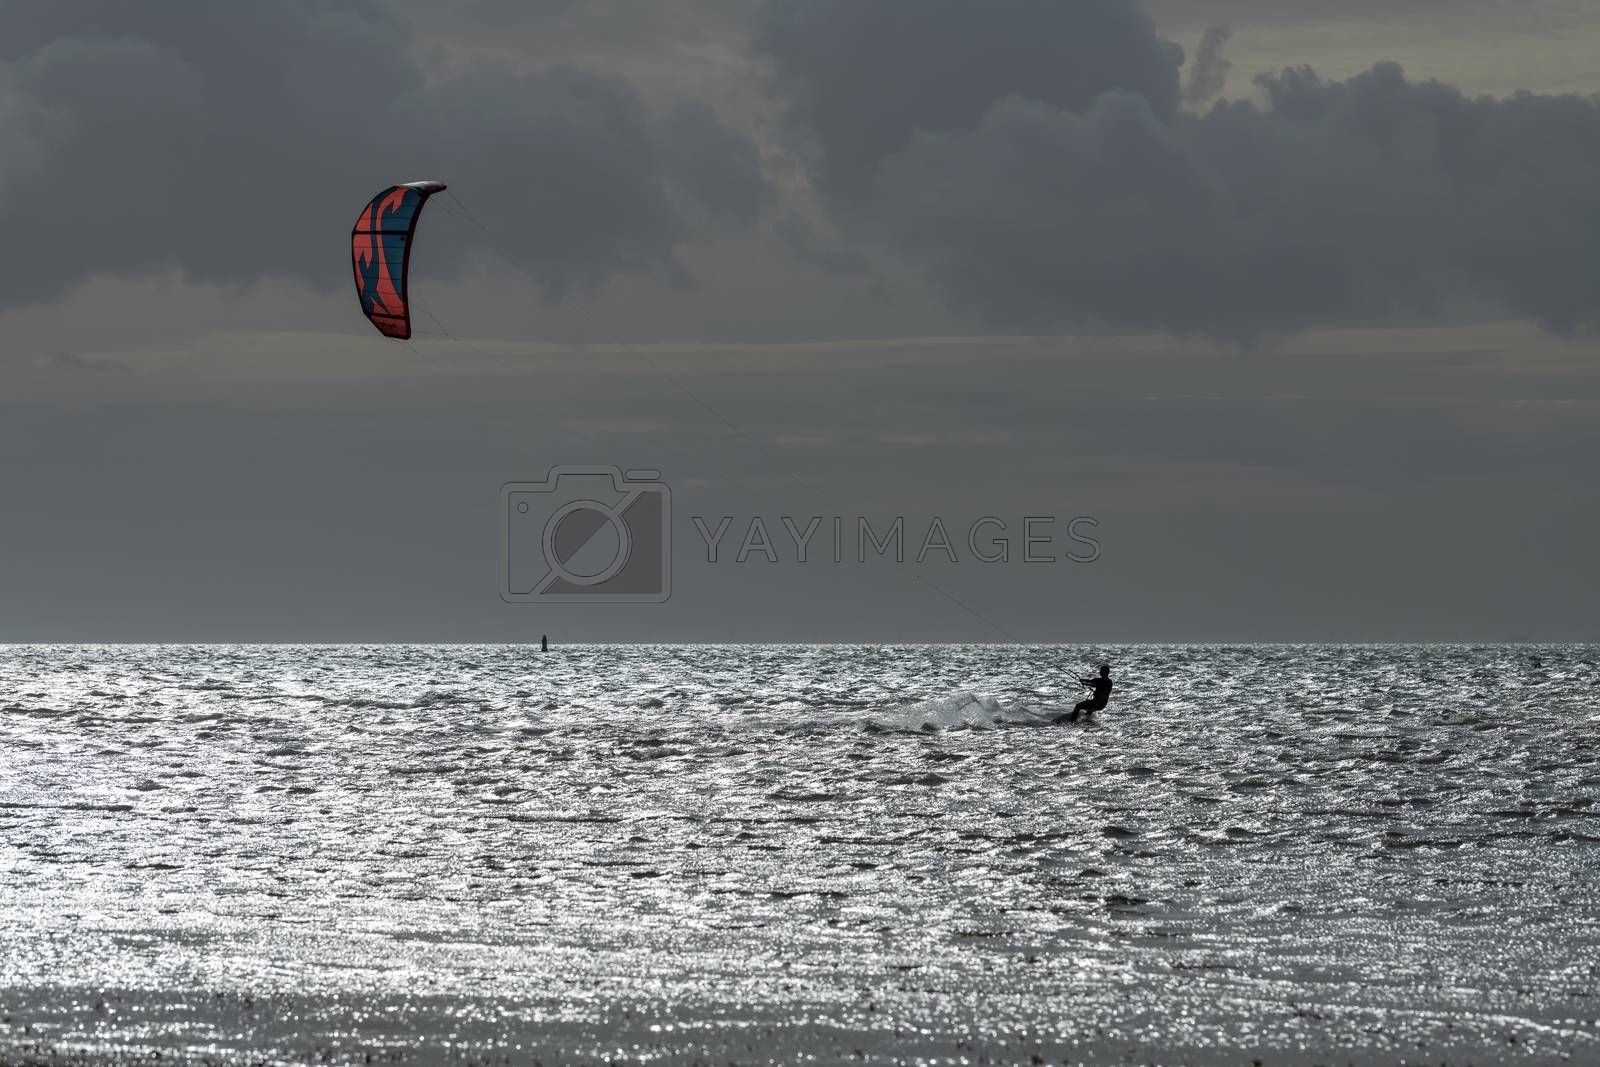 Kite Surfer in the evening sun on the Wadden Sea   by Tofotografie